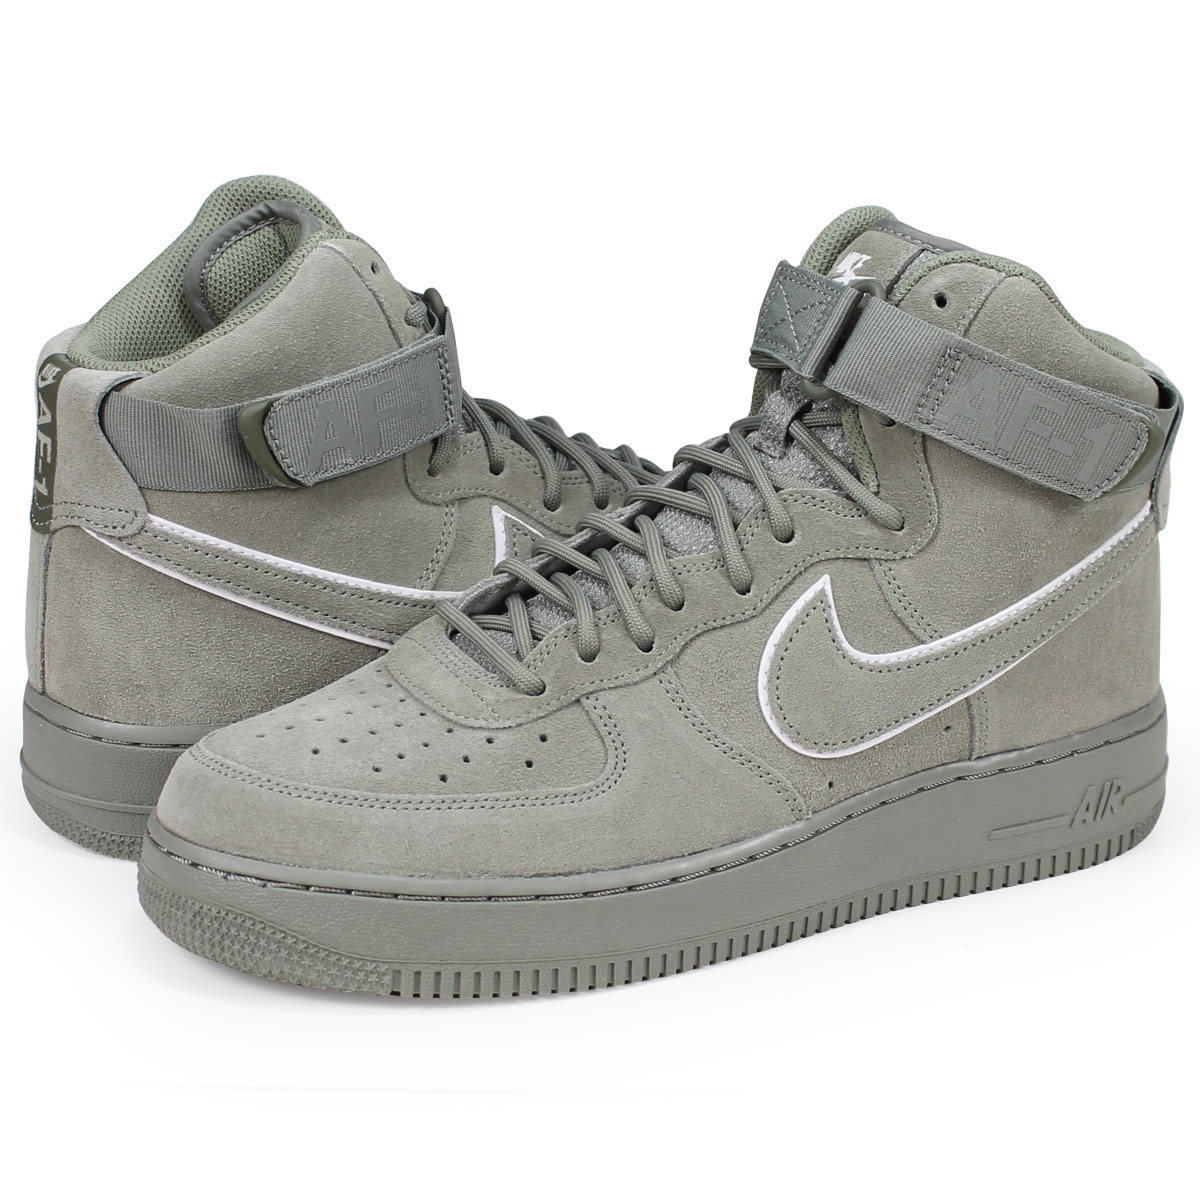 buy online 5a293 92ebe NIKE AIR FORCE 1 HIGH 07 LV8 Nike air force 1 high sneakers men AA1118-002  green [load planned Shinnyu load in reservation product 6/29 containing]